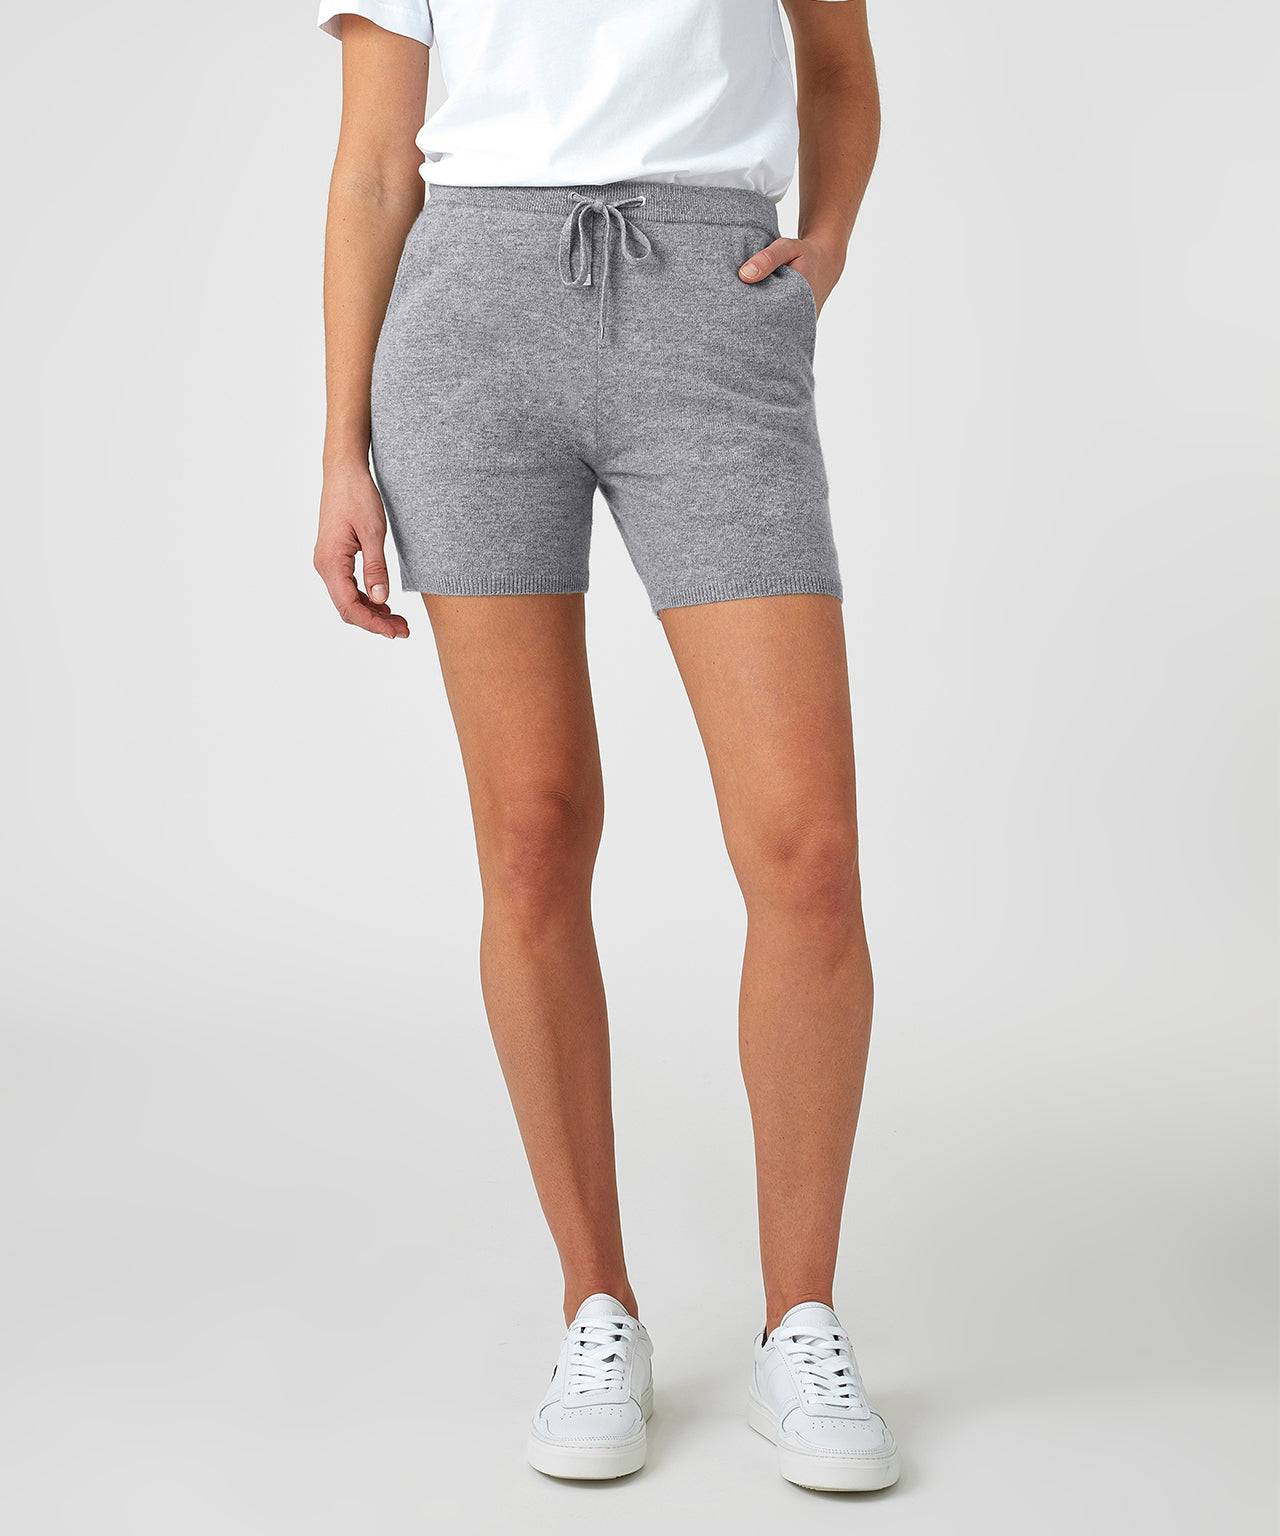 Cashmere Shorts His For Her - grey melange